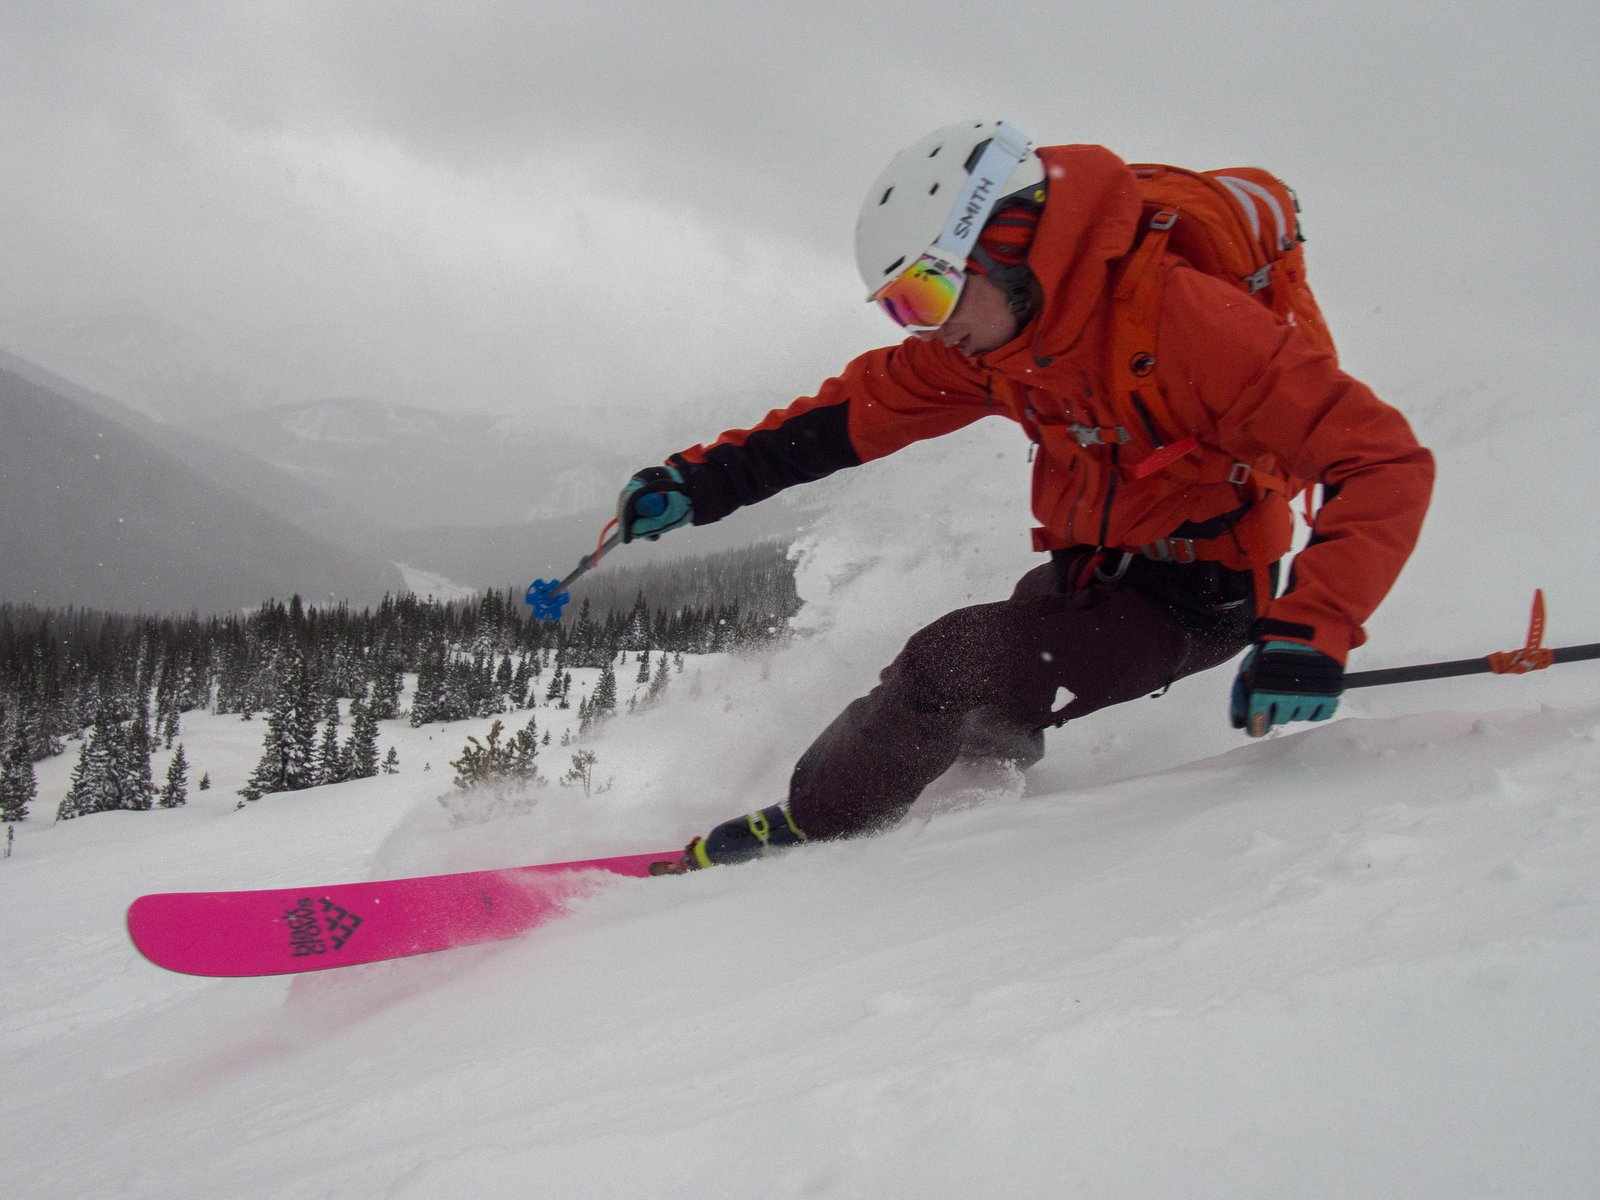 Nick laying one down on some of the new snow